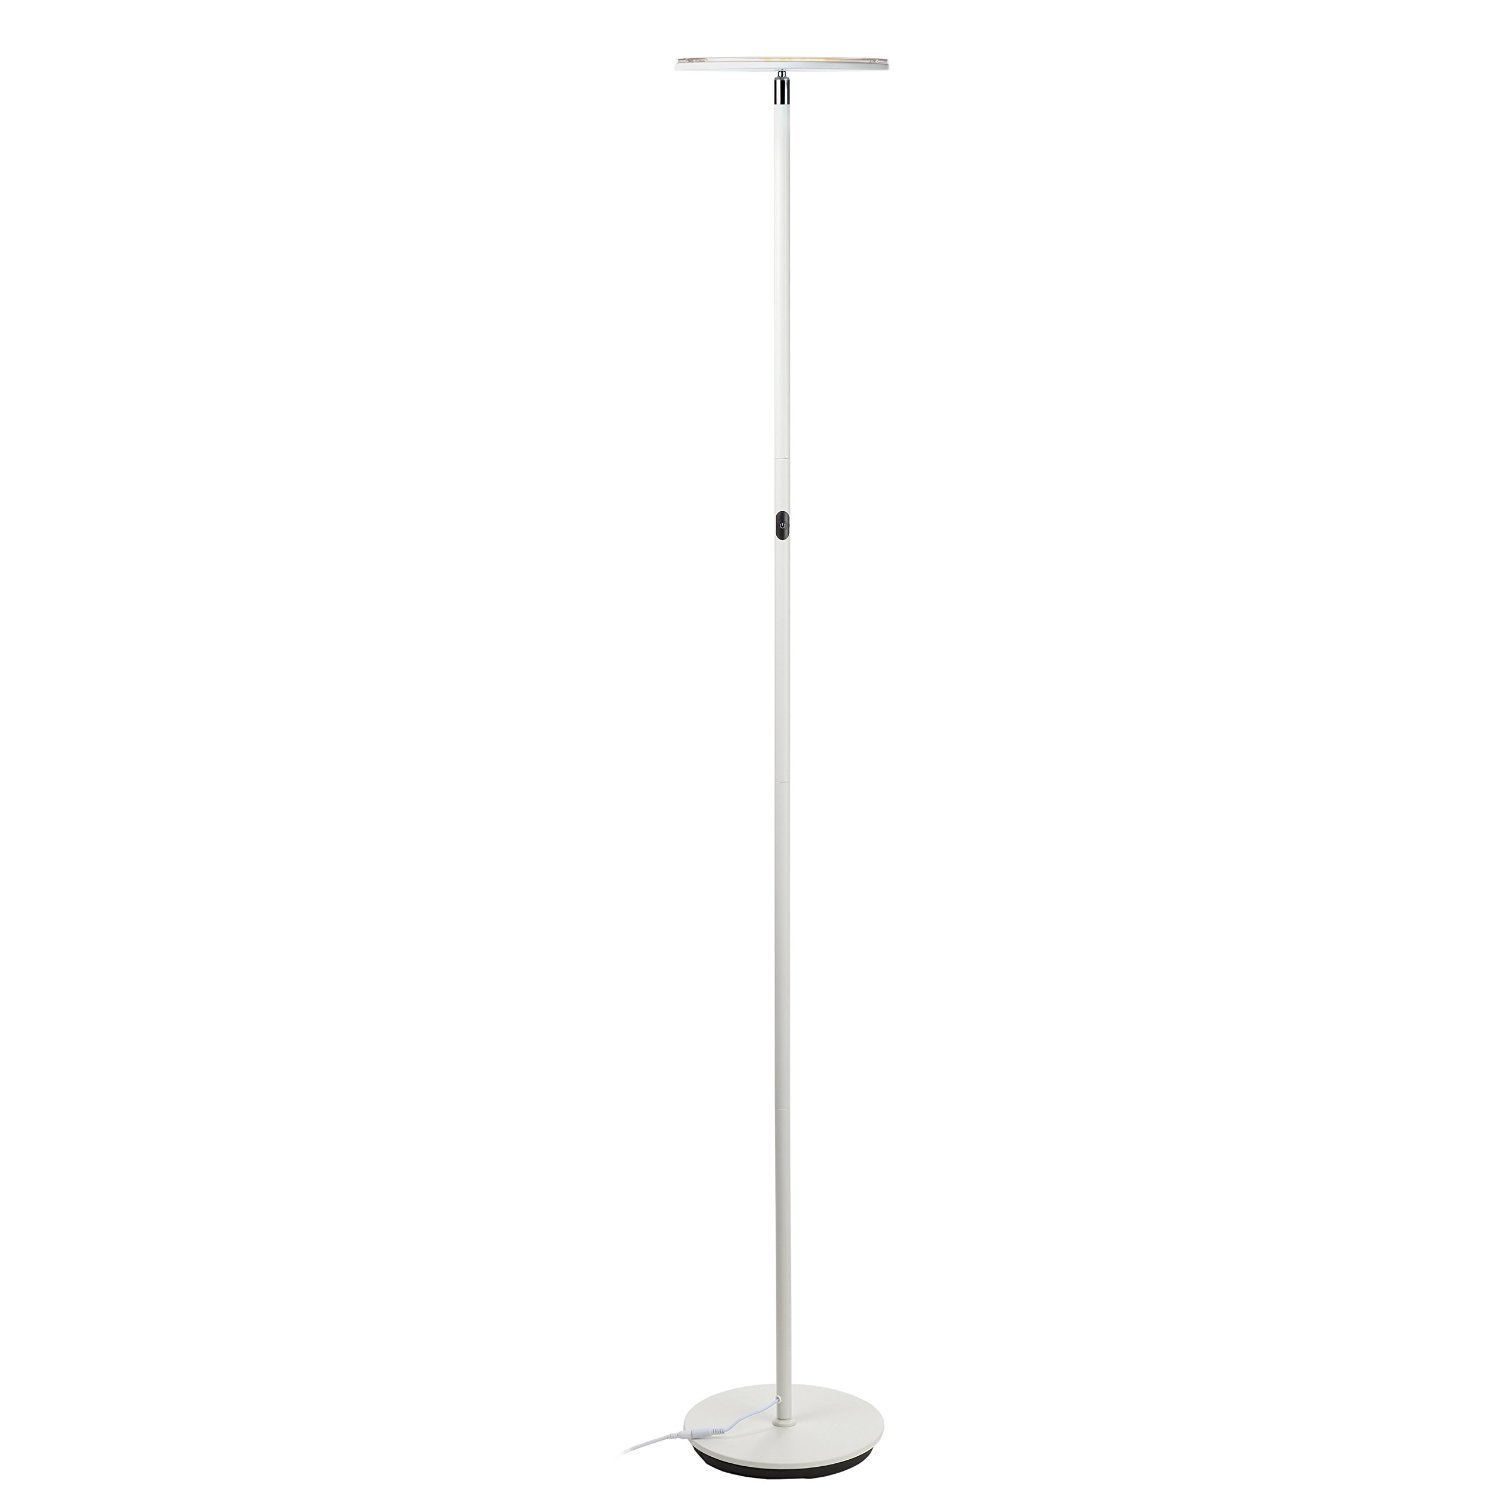 floor lamp standing with narrow lights torchiere officeworks lamps magnifying living office for tall light design reading bright funky room stand superb nordic led